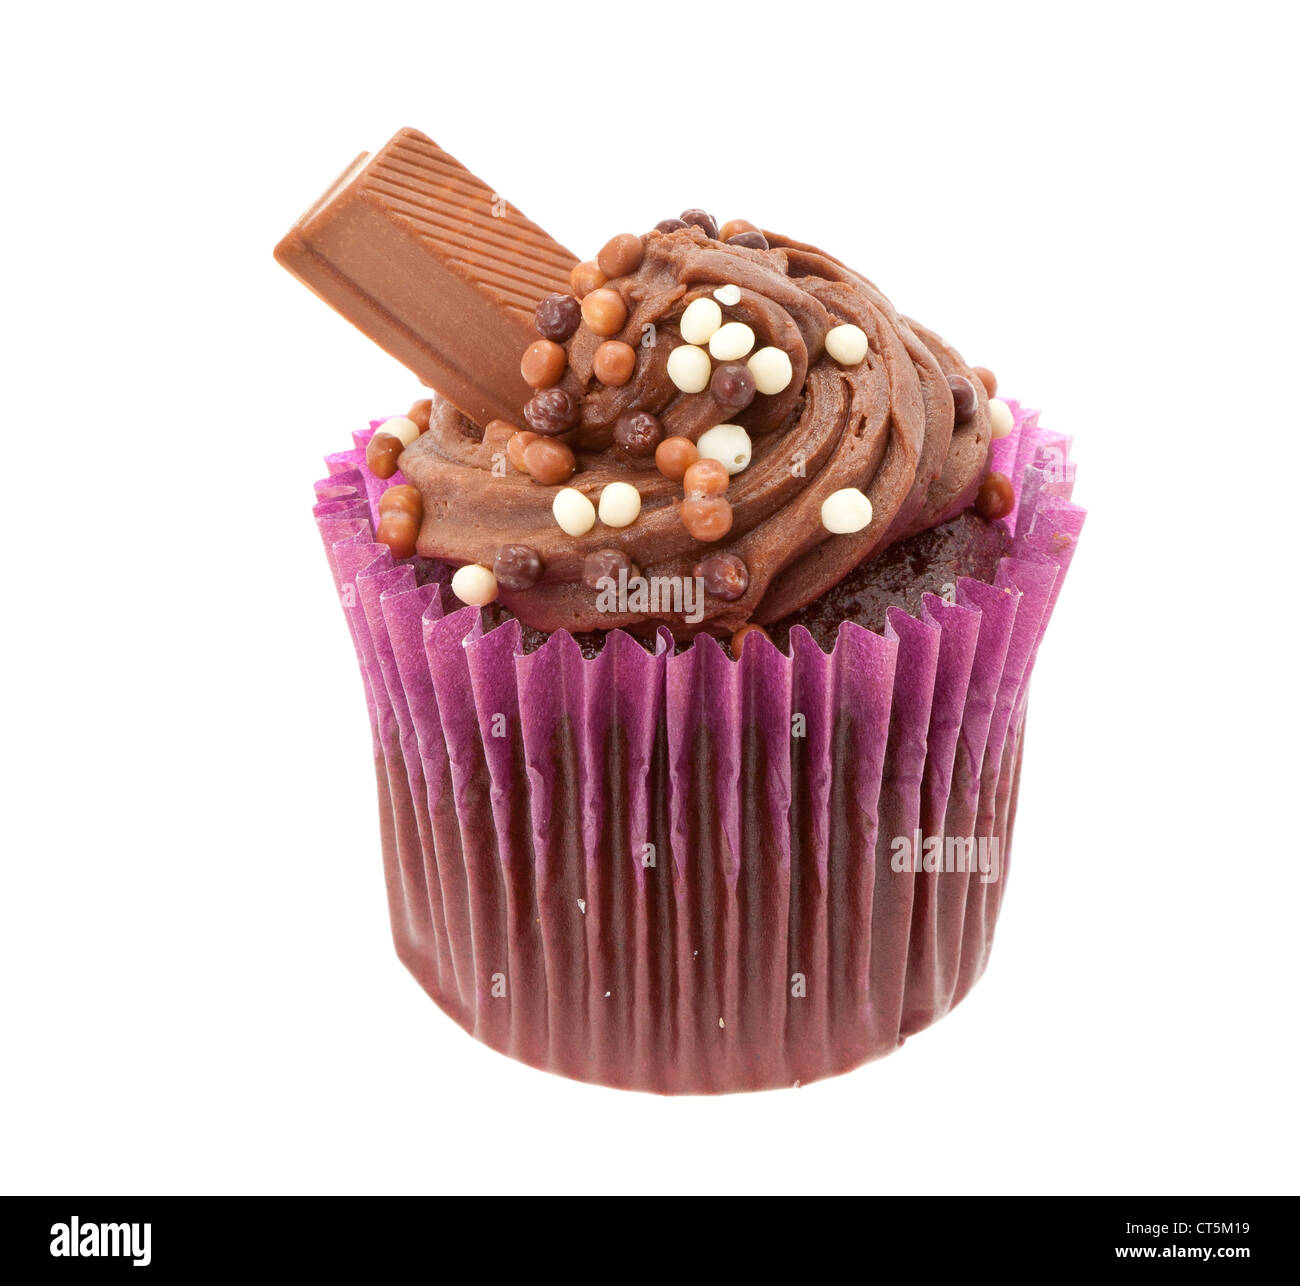 Chocolate cup cake with buttercream icing and a chocolate bar - studio shot with a white background - Stock Image